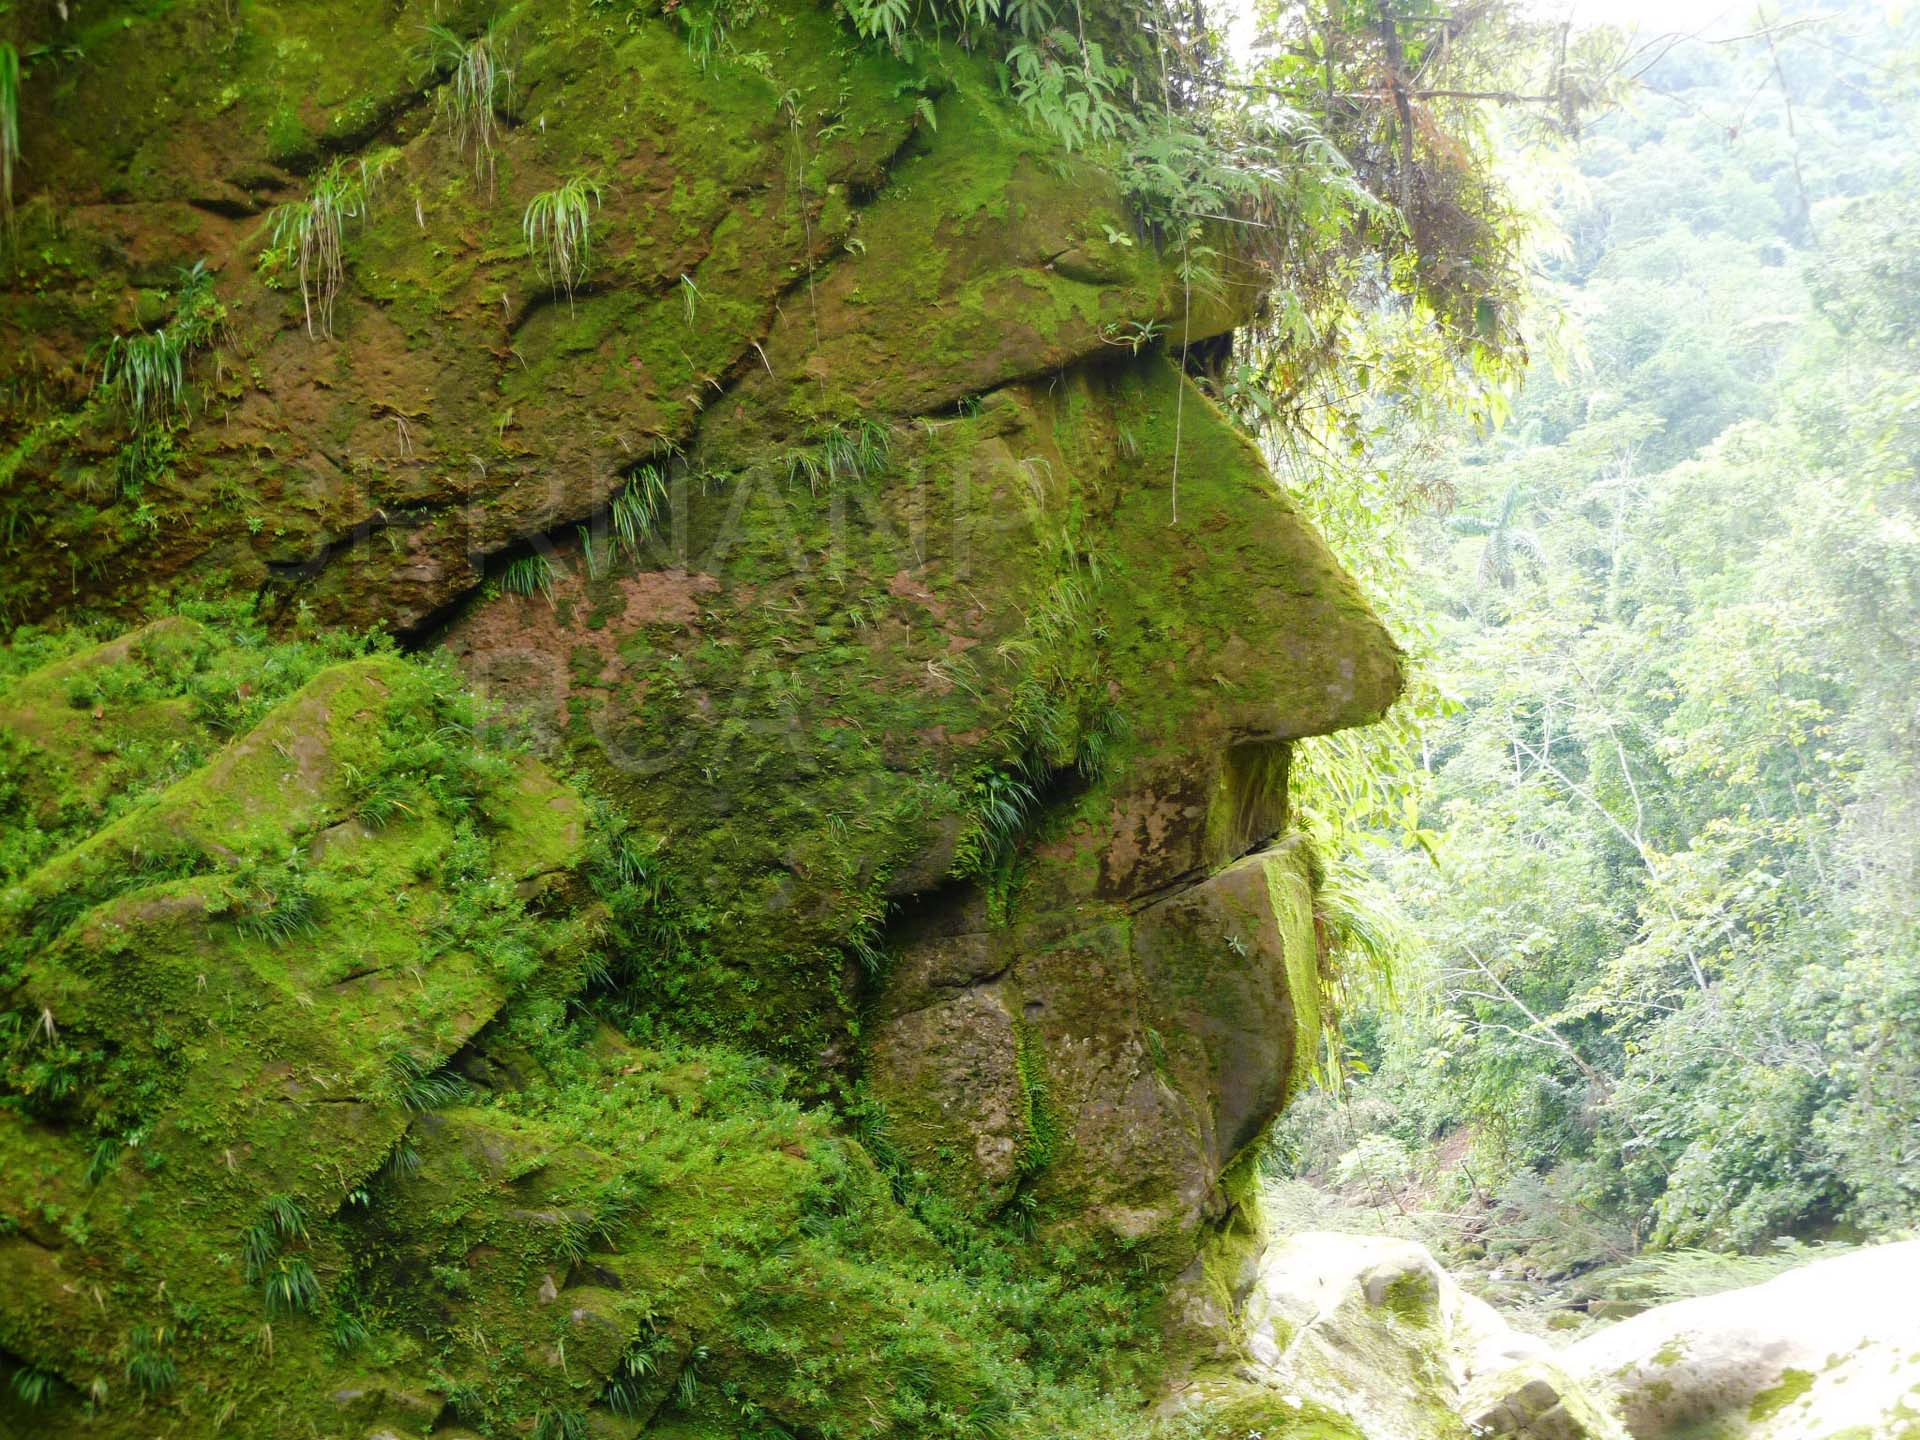 The Harakbut Face - A supermassive ancient face hidden deep in the Peruvian Amazon 34